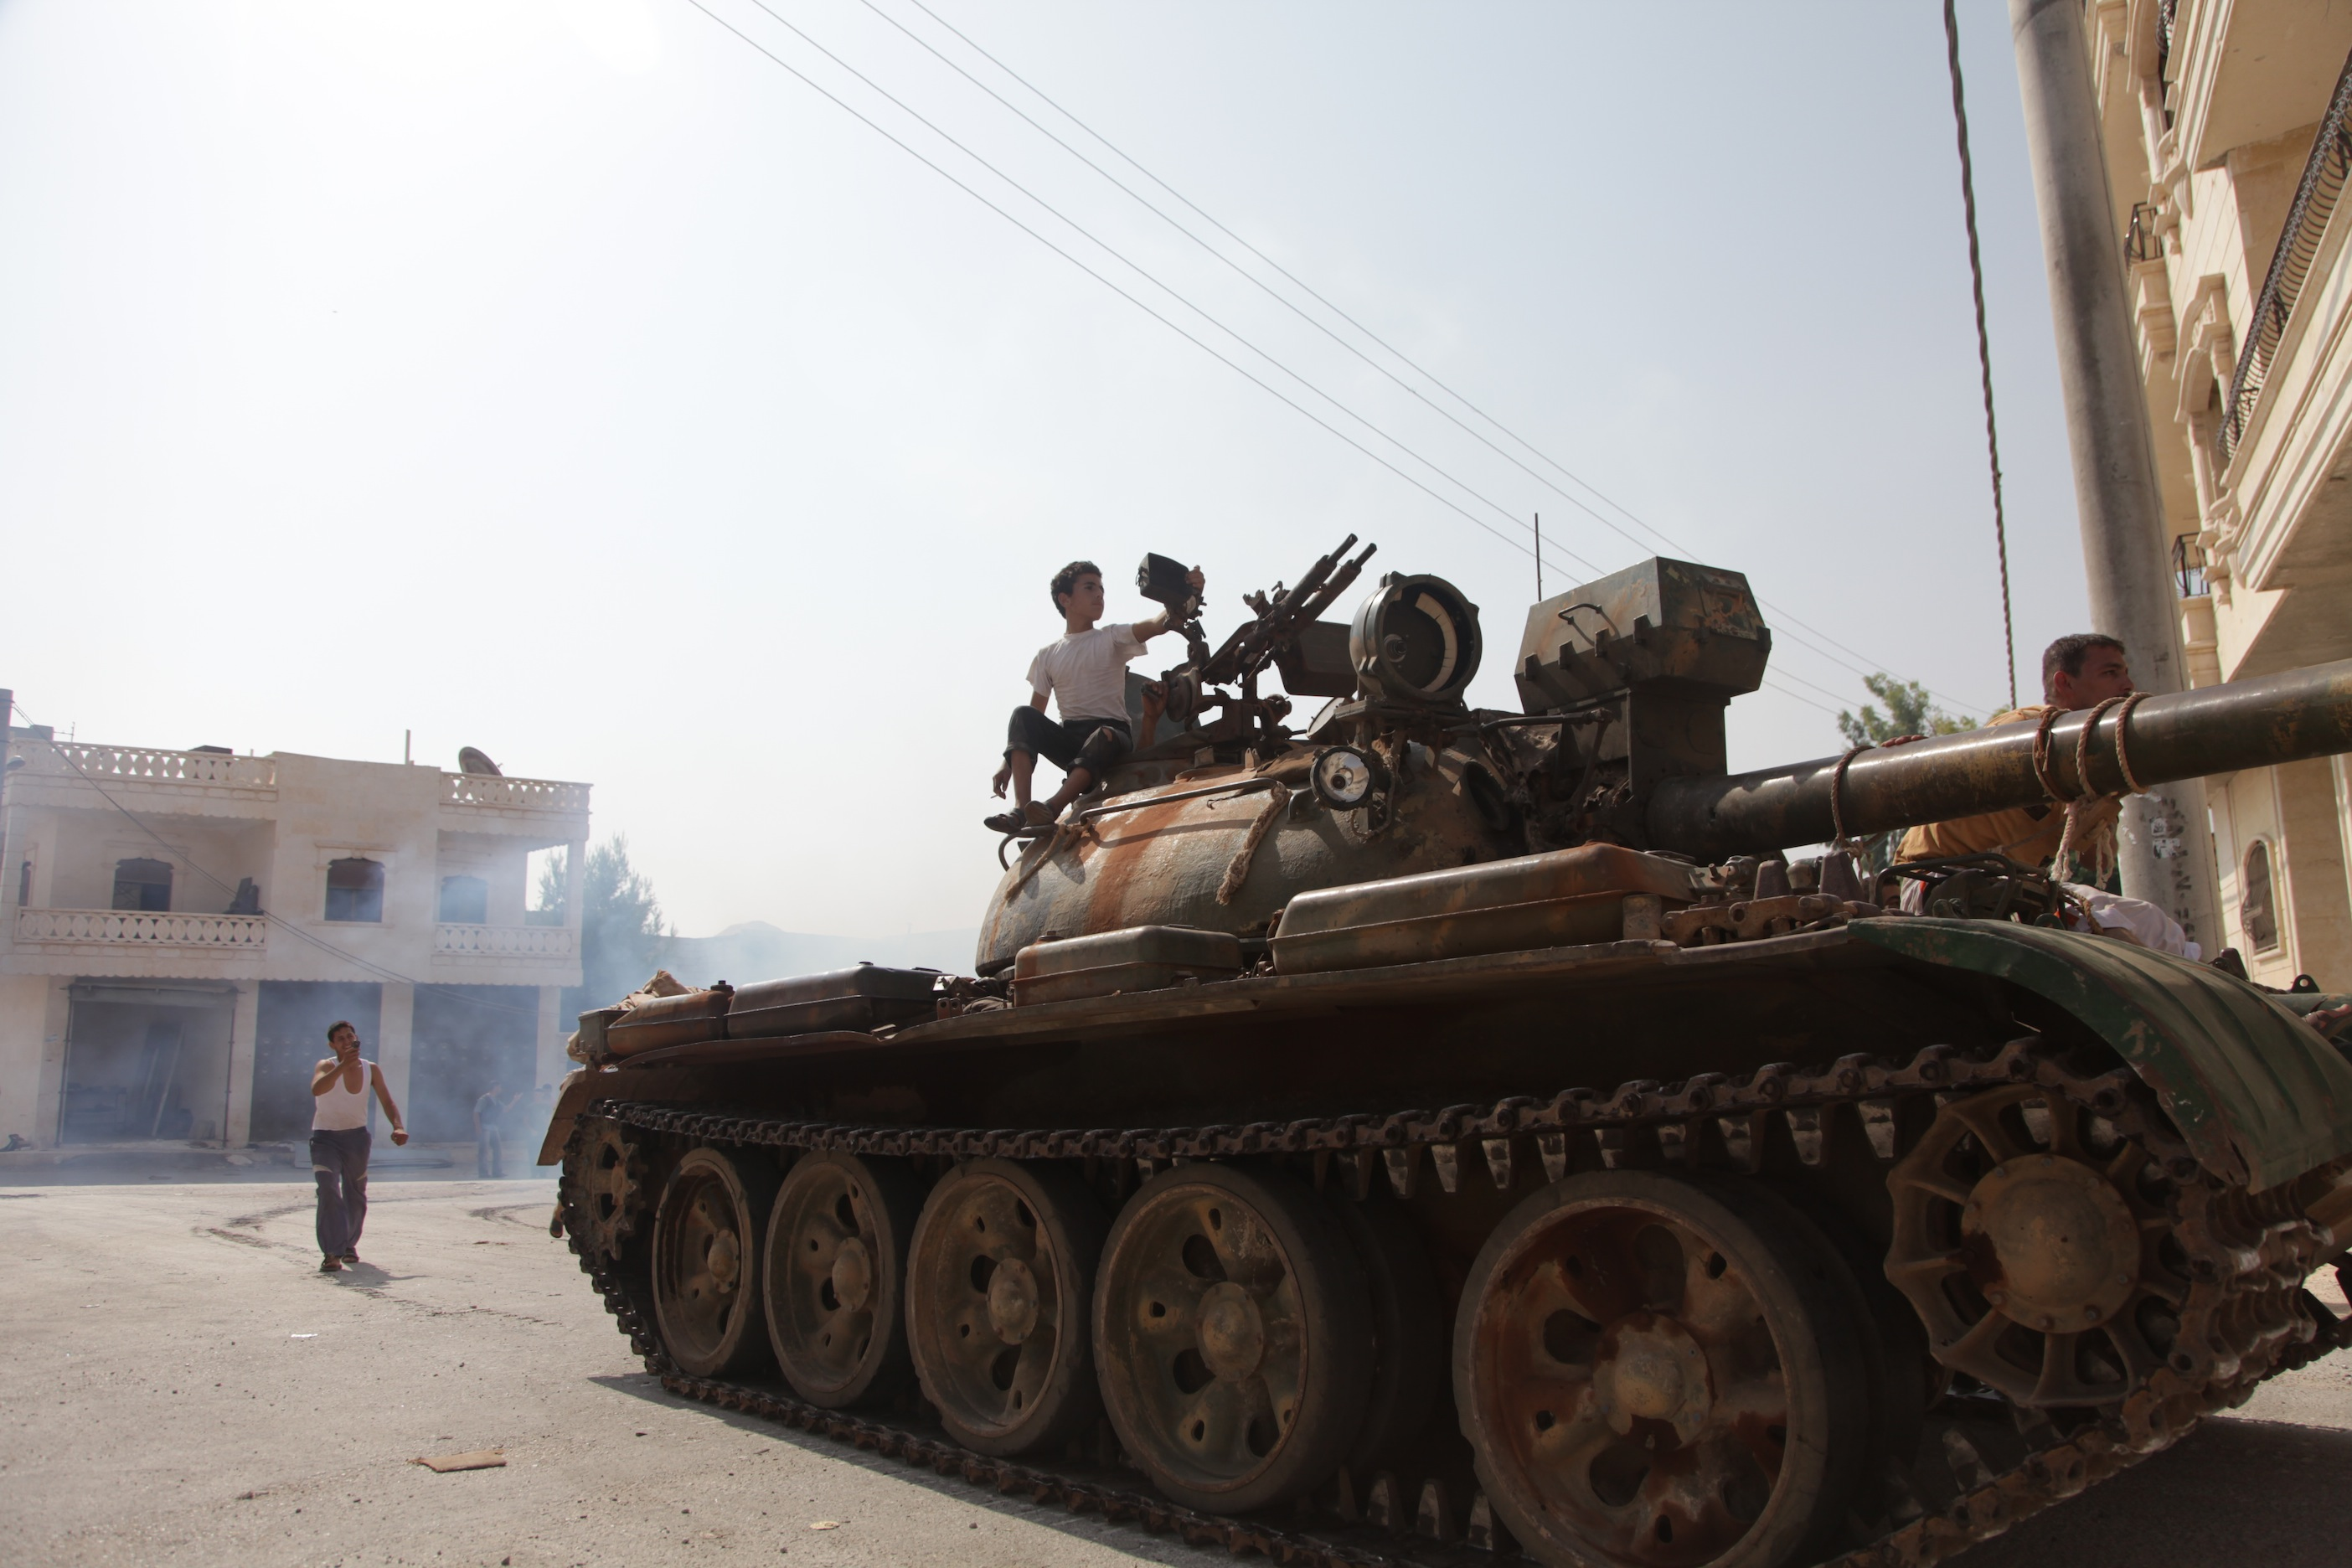 Syrian rebel fighters celebrate on top of a tank captured from the Syrian government forces at a checkpoint in the village of Anadan, about five kilometres (3.8 miles) northwest of Aleppo, on July 30 2012, after a 10-hour battle. The strategic checkpoint of Anadan secures the rebel fighters free movement between the northern city of Aleppo and Turkey, a Free Syrian Army commander and an AFP journalist said. AFP PHOTO/JUNOT DIAZ